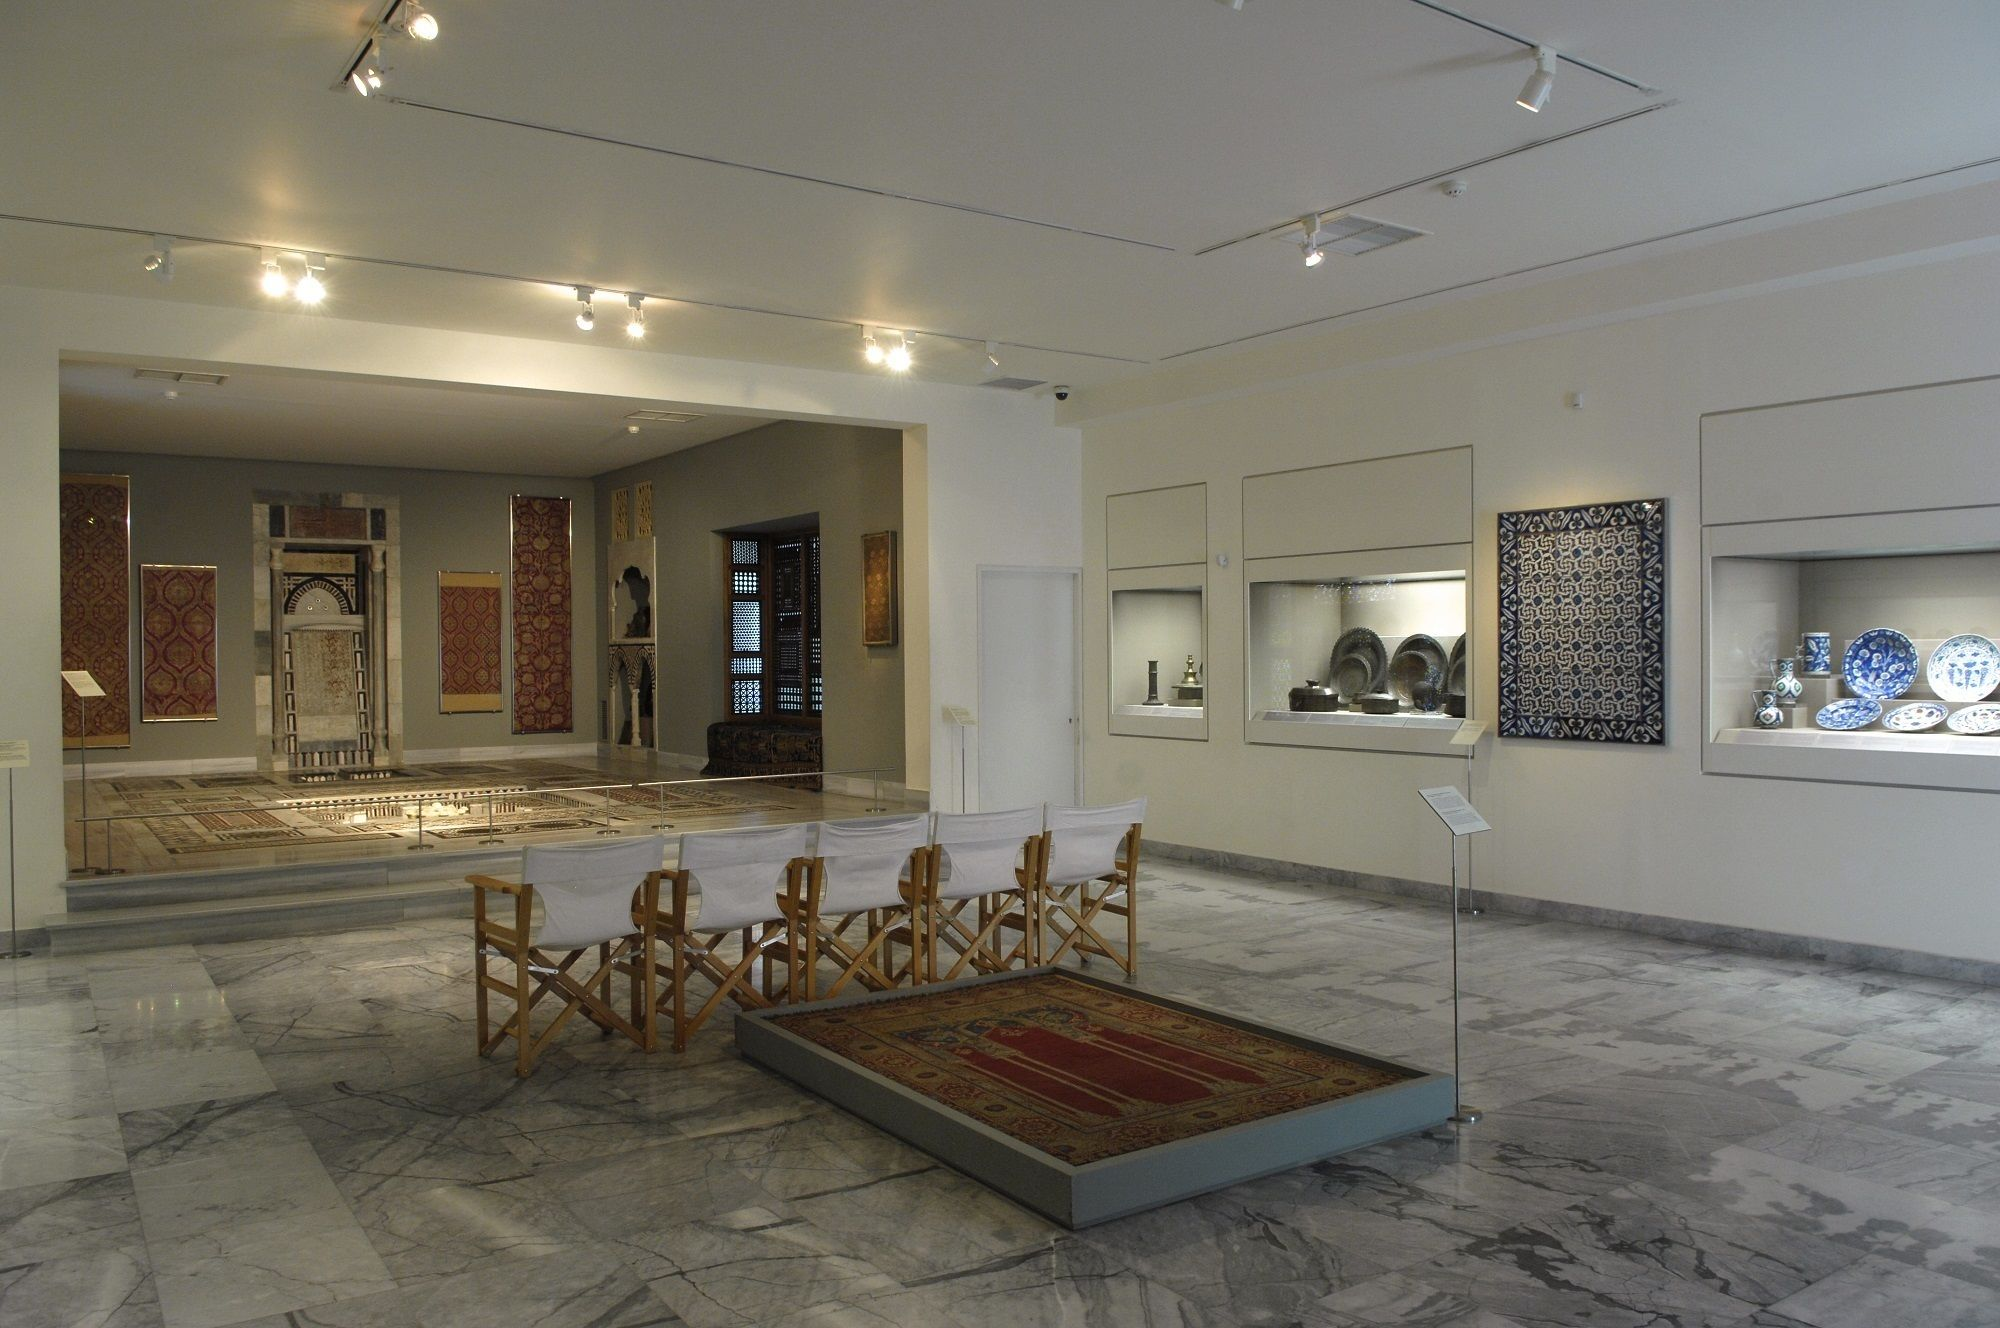 Interior of Benaki Museum of Islamic Art